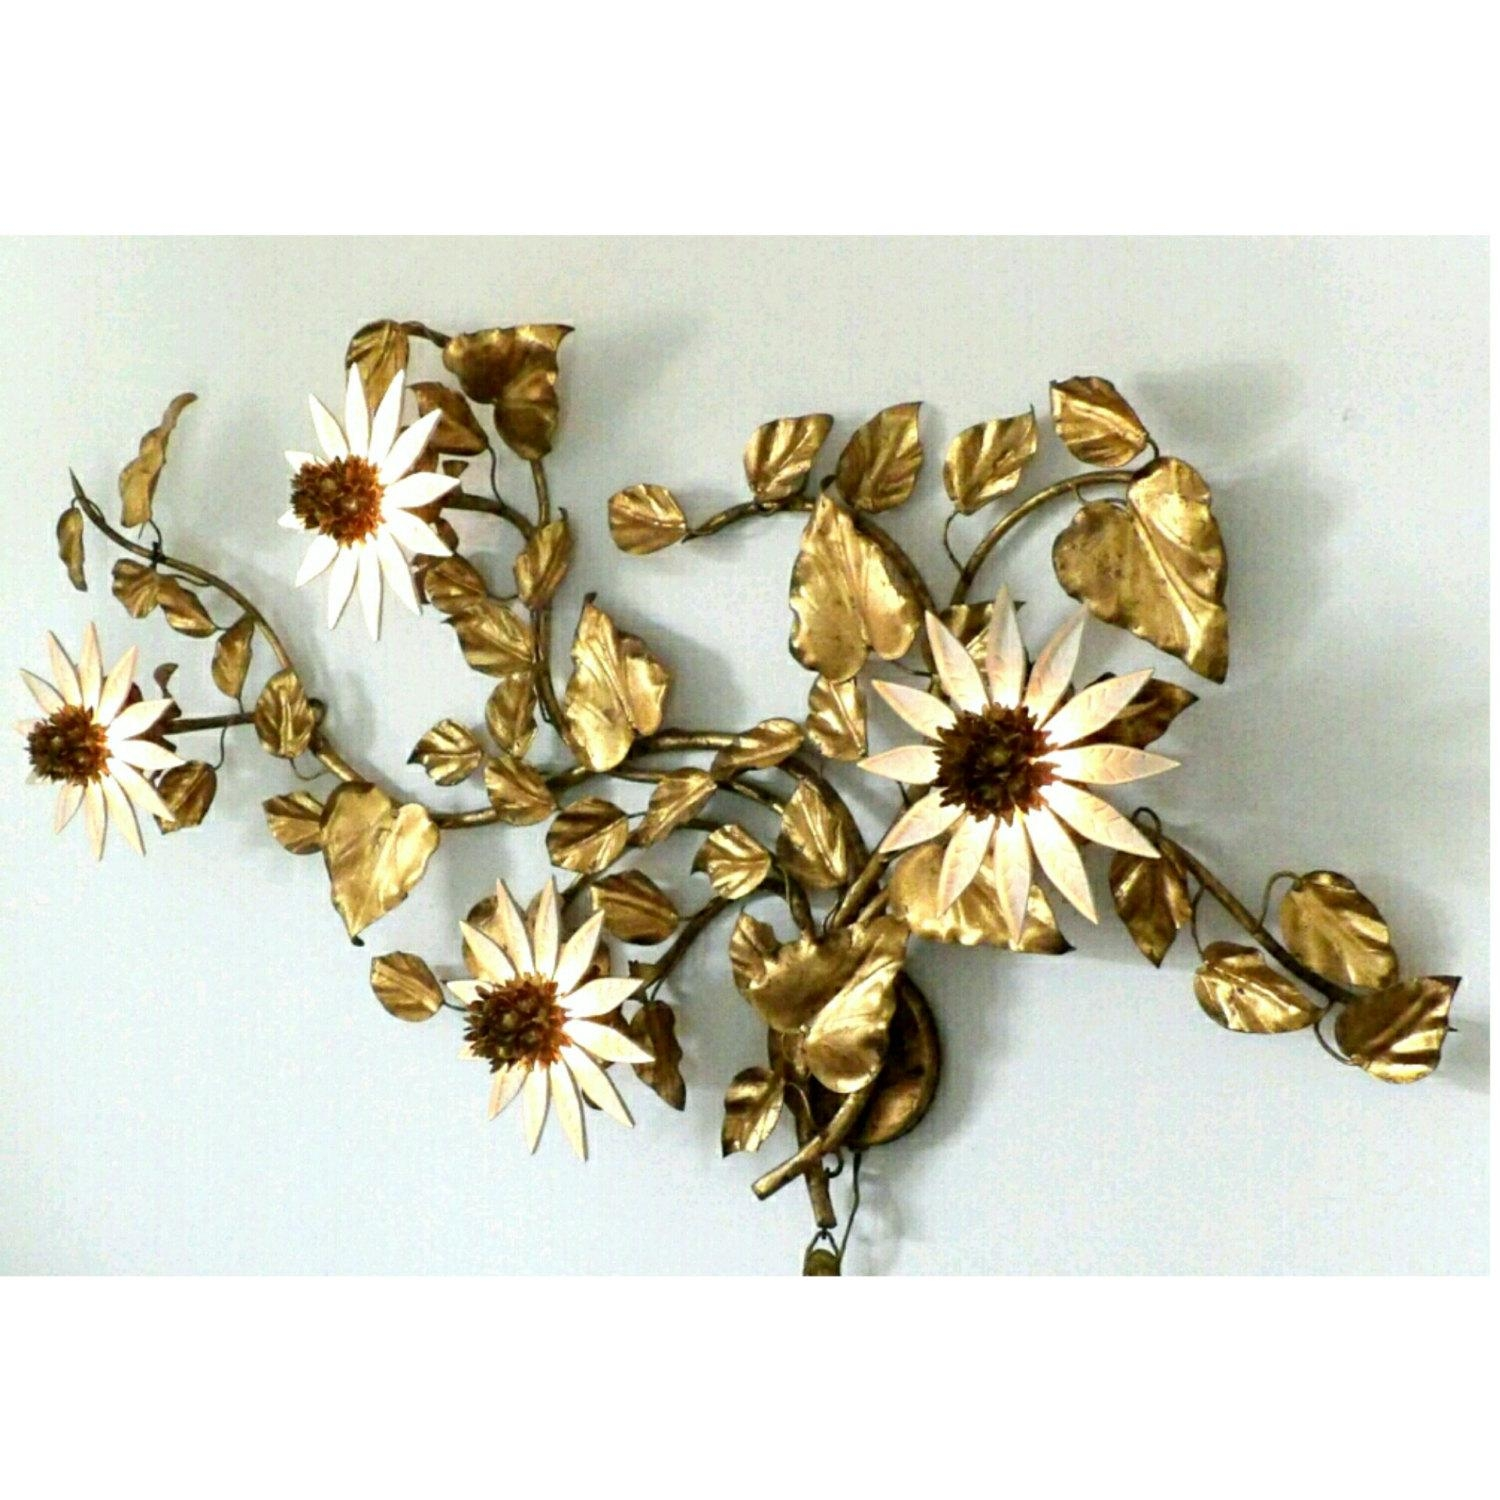 Brevettato Italian Lighted Metal Wall Art Sconce Floral Within Italian Metal Wall Art (View 16 of 20)